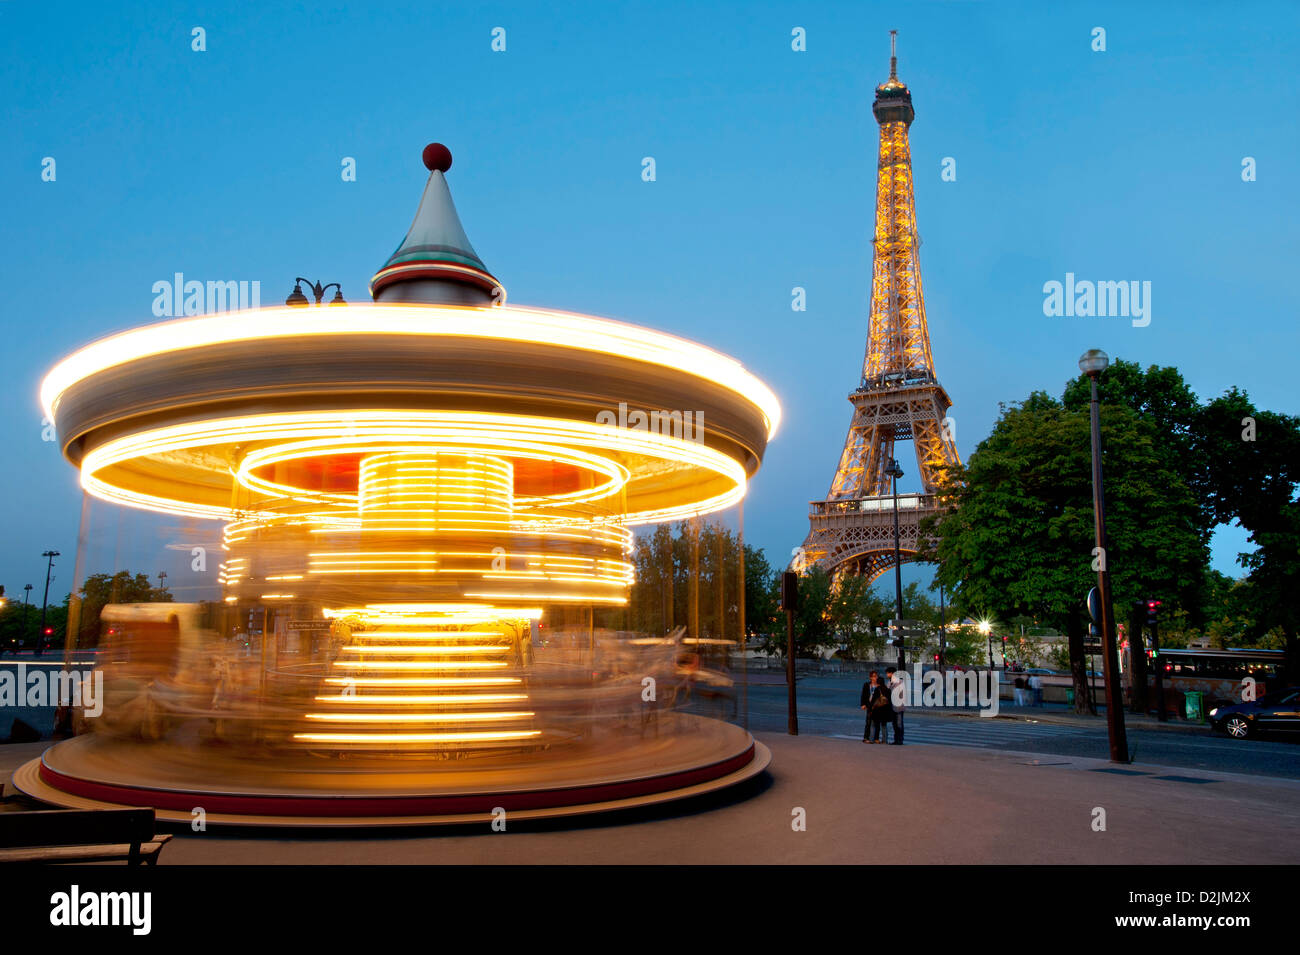 The Eiffel Tower at night Paris France - Stock Image